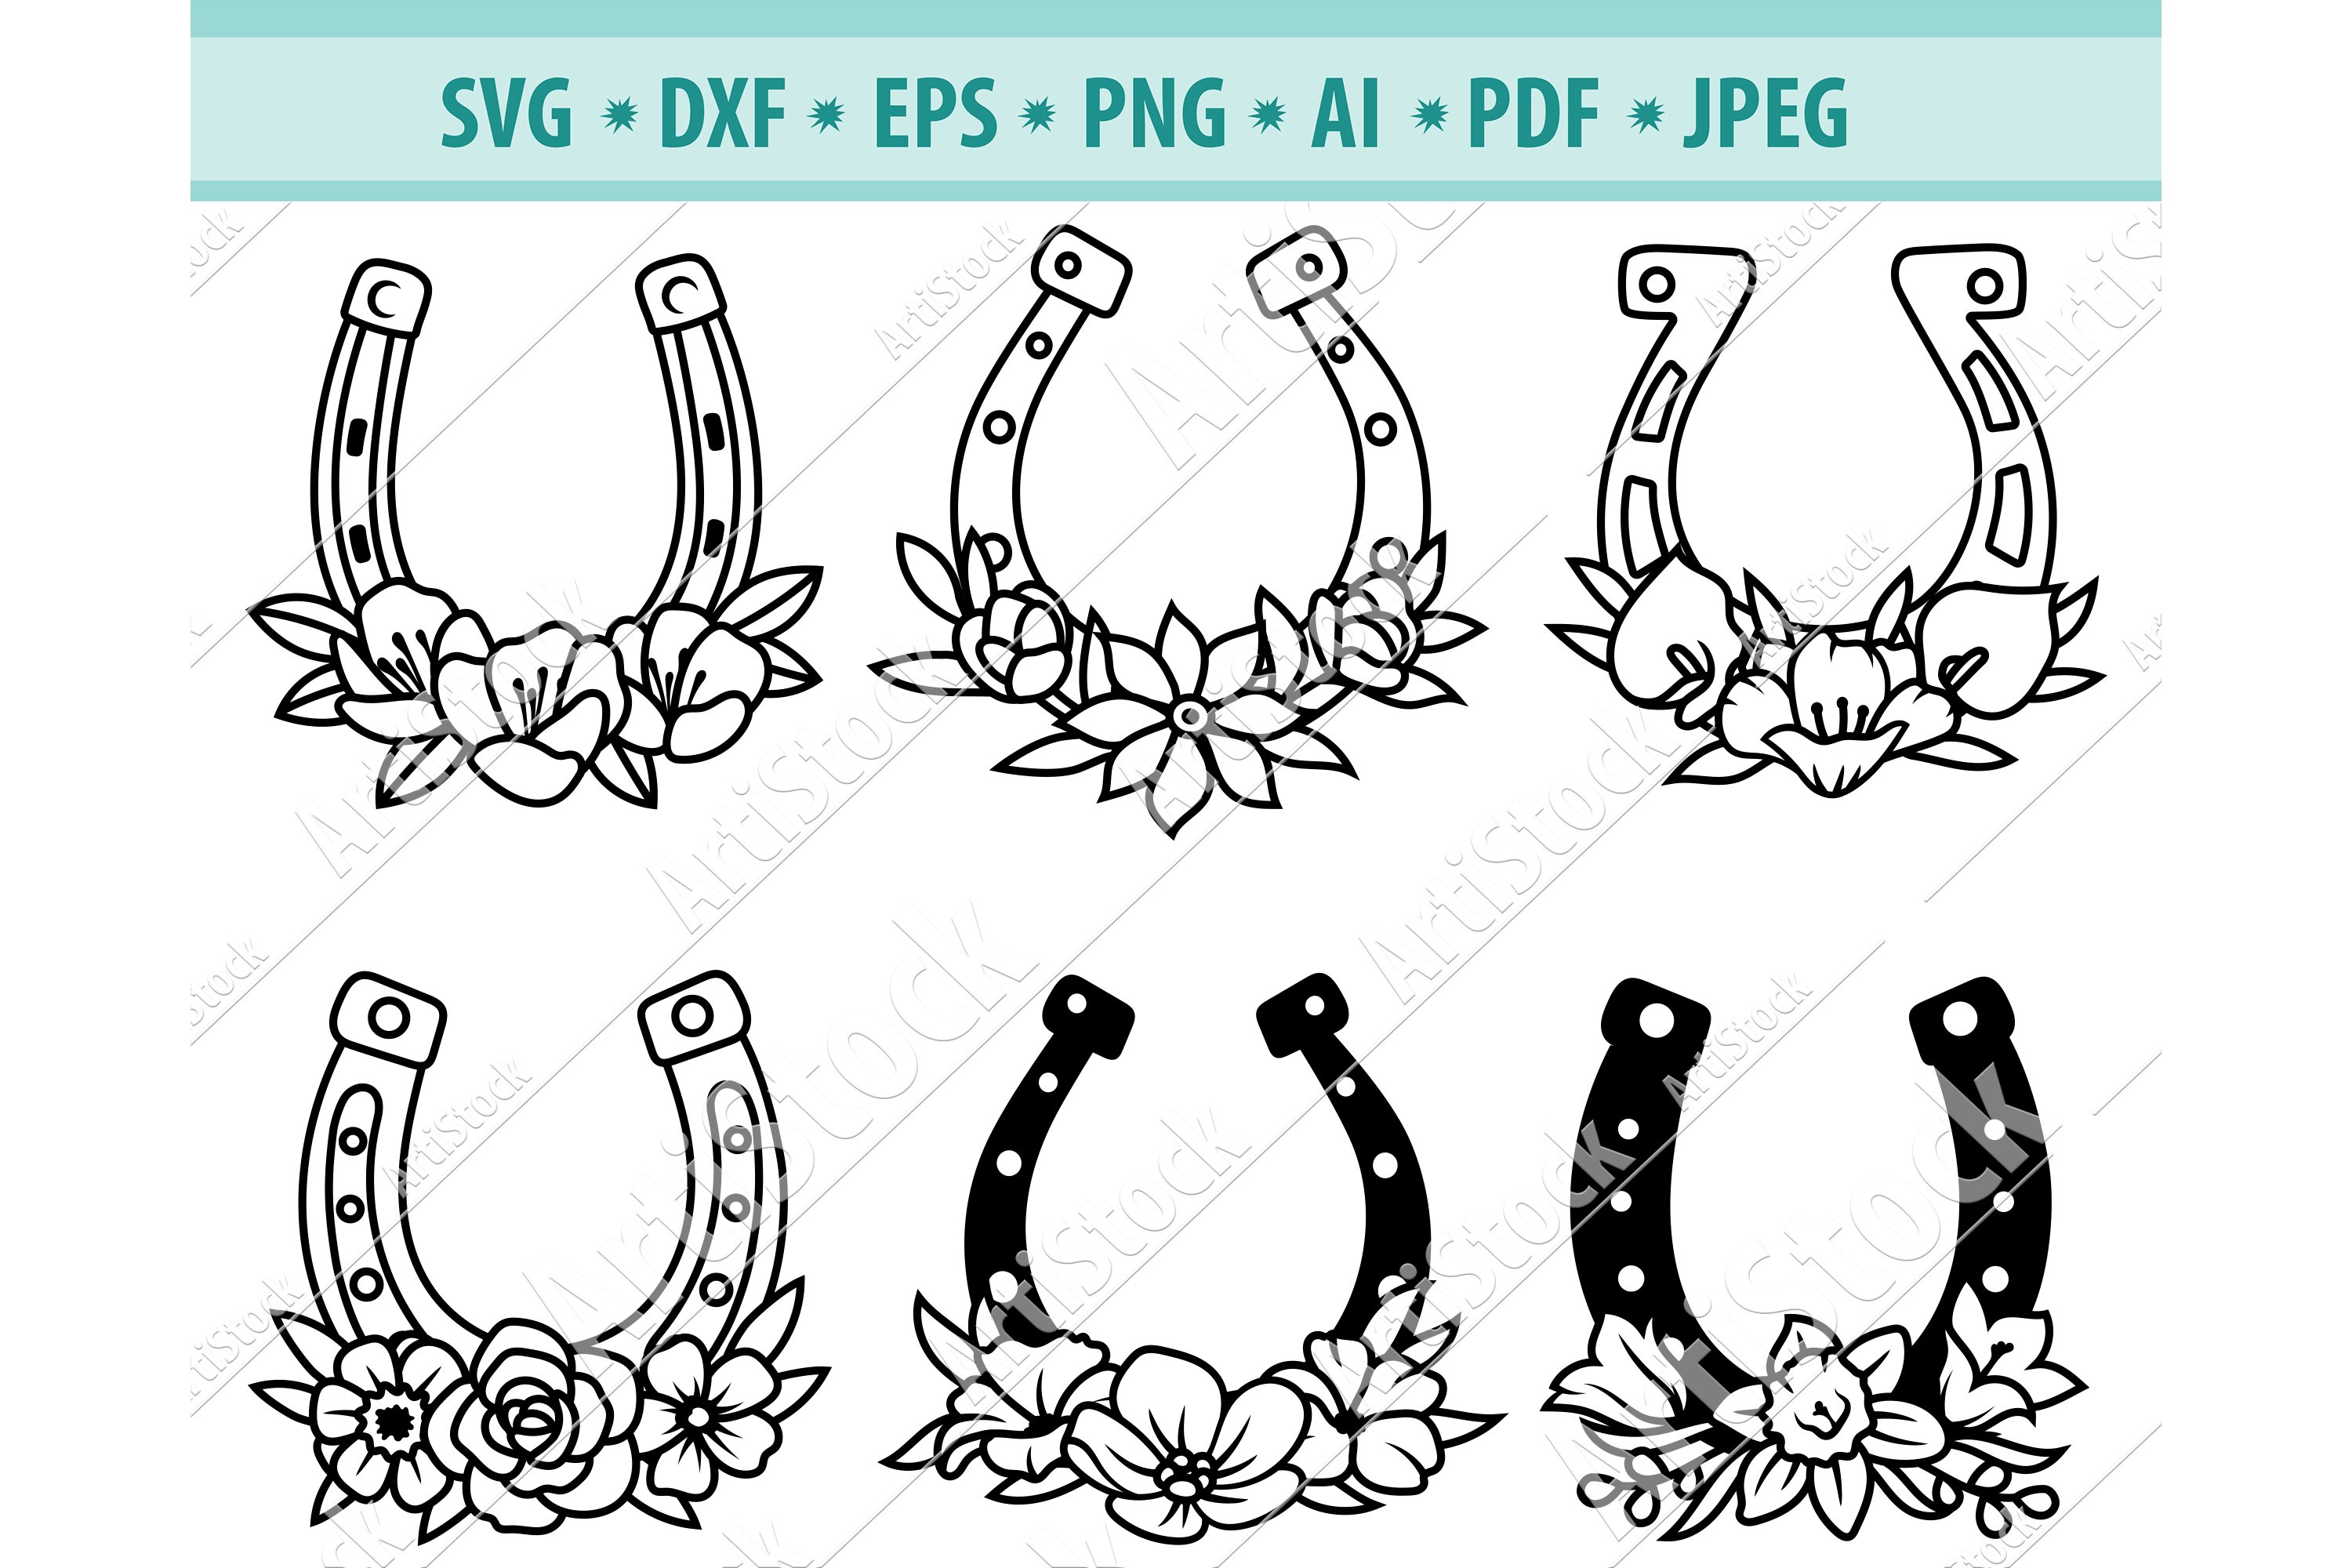 dxf Horseshoe Svg bundle lucky svg designs for st patricks day with flowers  png Horseshoe floral monogram frame svg cut files for cricut